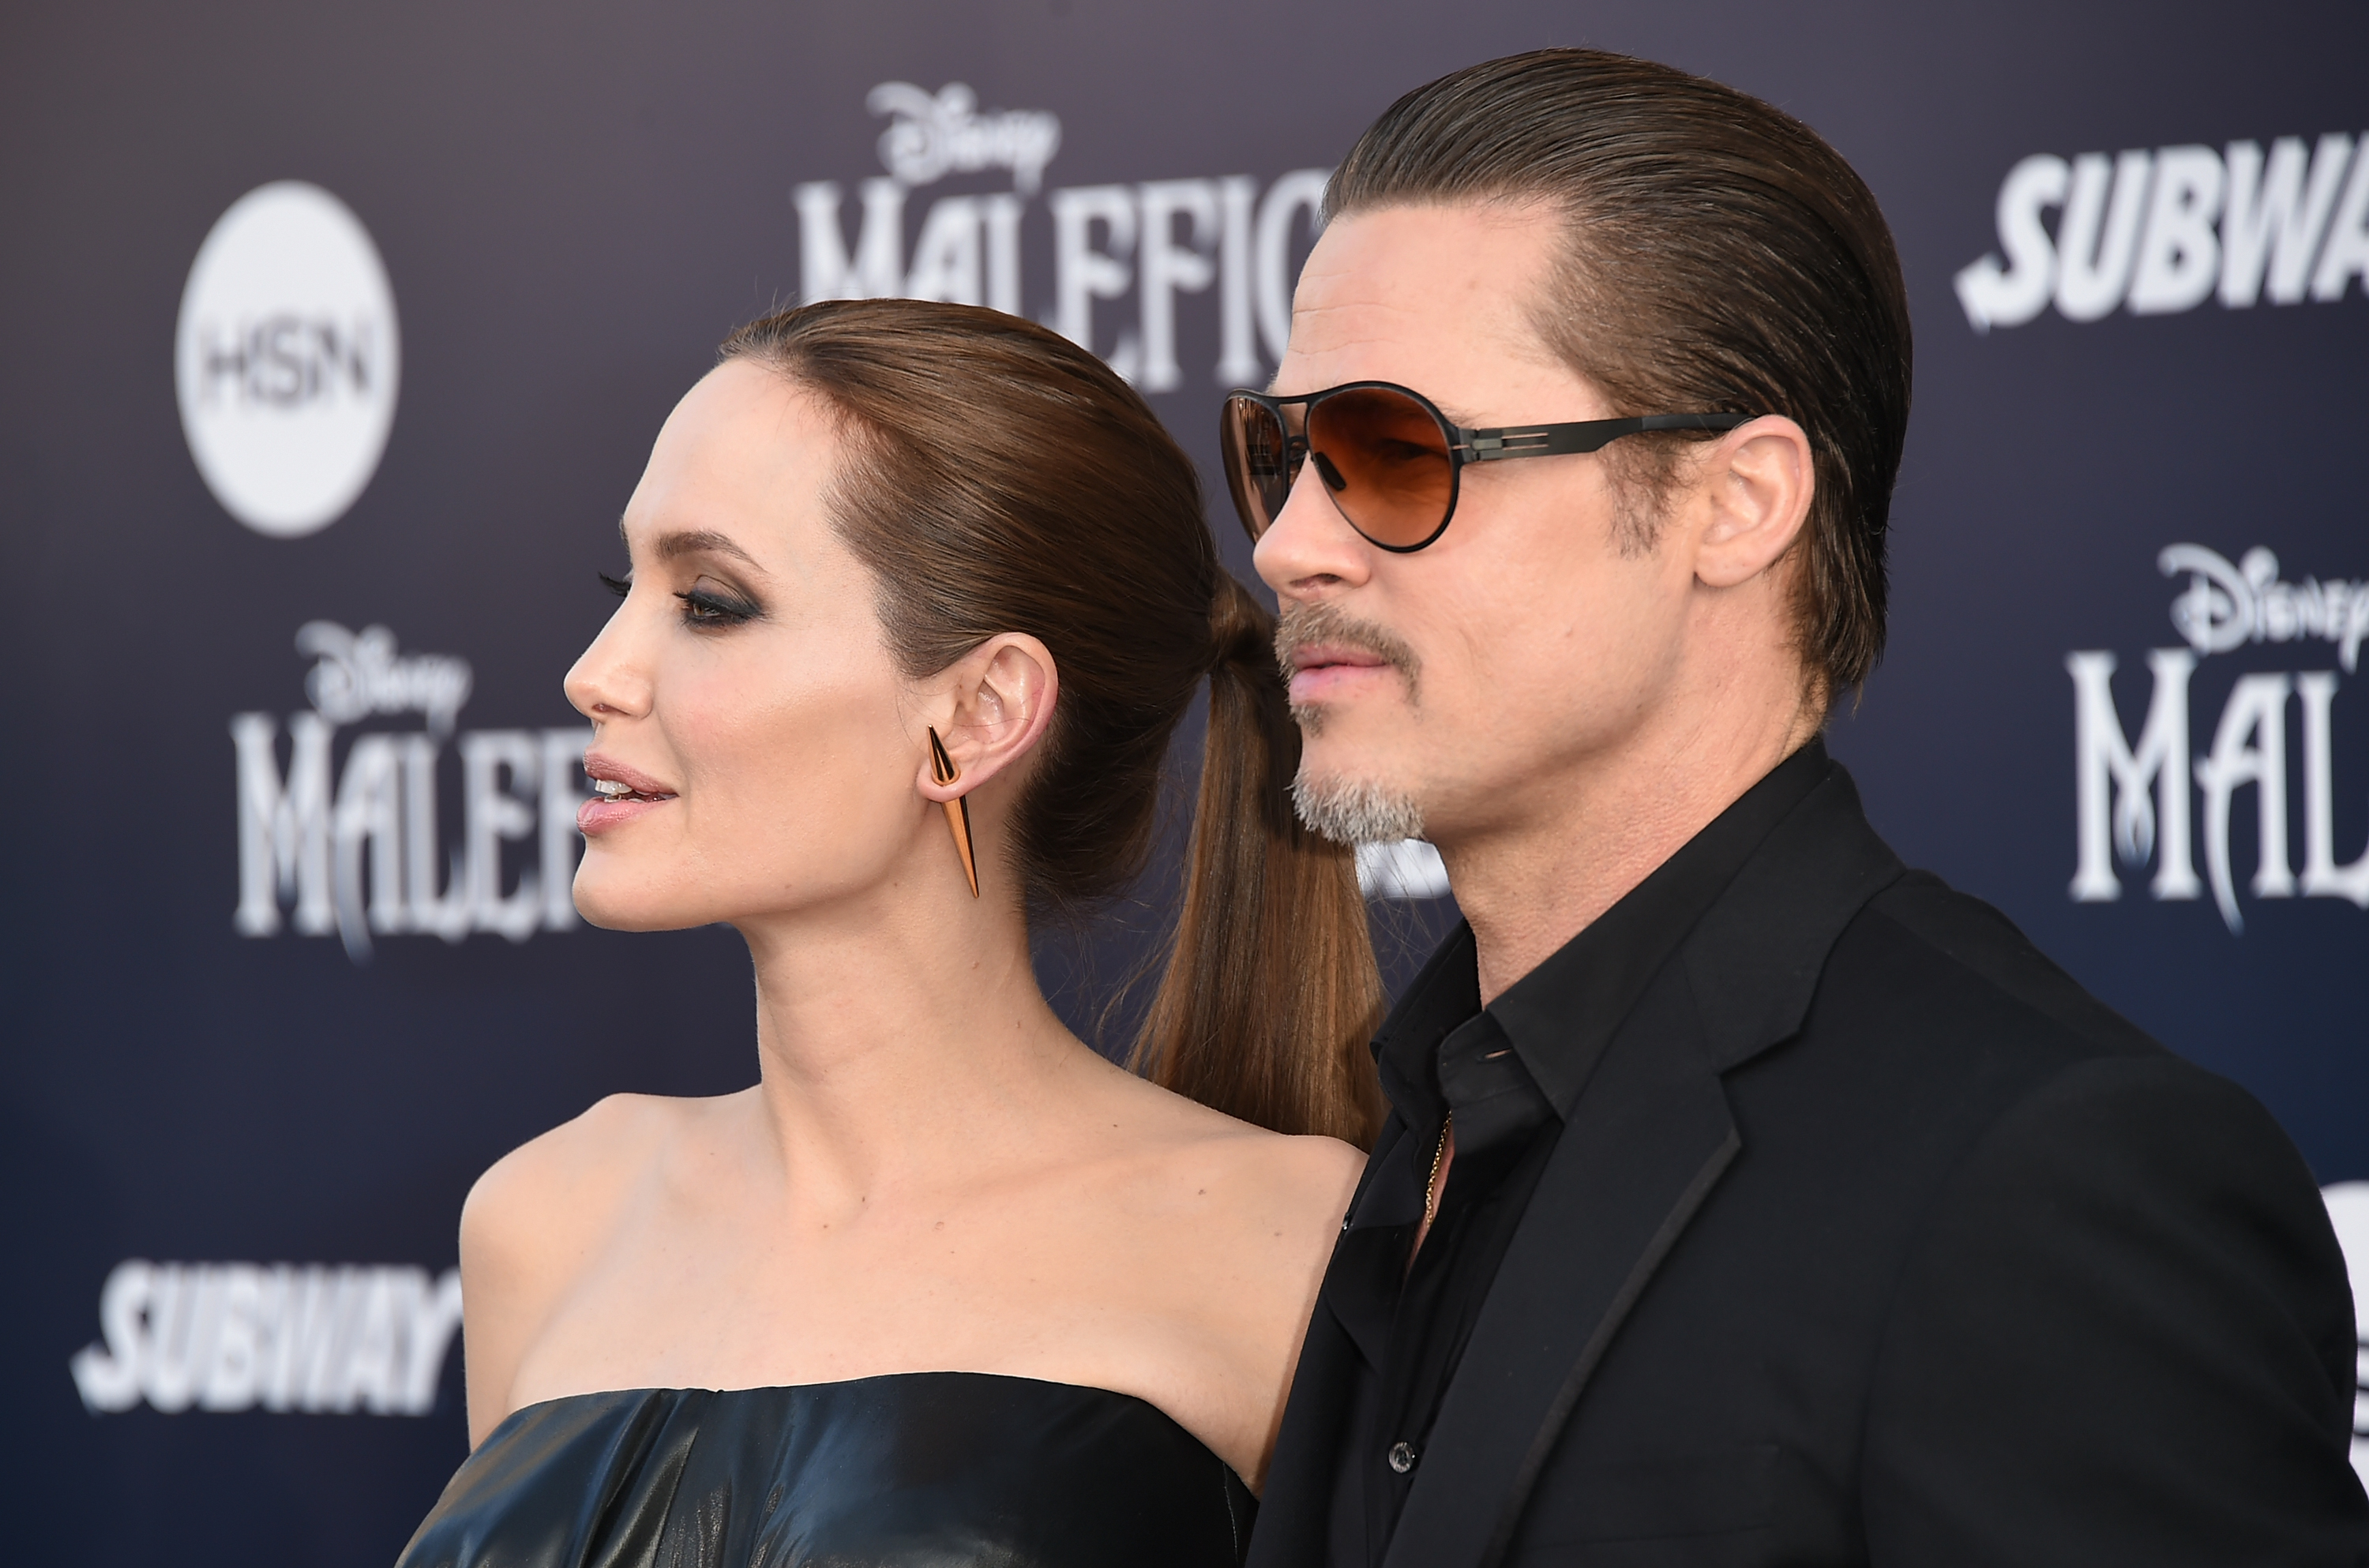 Actors Angelina Jolie and Brad Pitt attend the World Premiere of Disney's 'Maleficent' at the El Capitan Theatre on May 28, 2014 in Hollywood, California. (Photo by Jason Merritt/Getty Images)